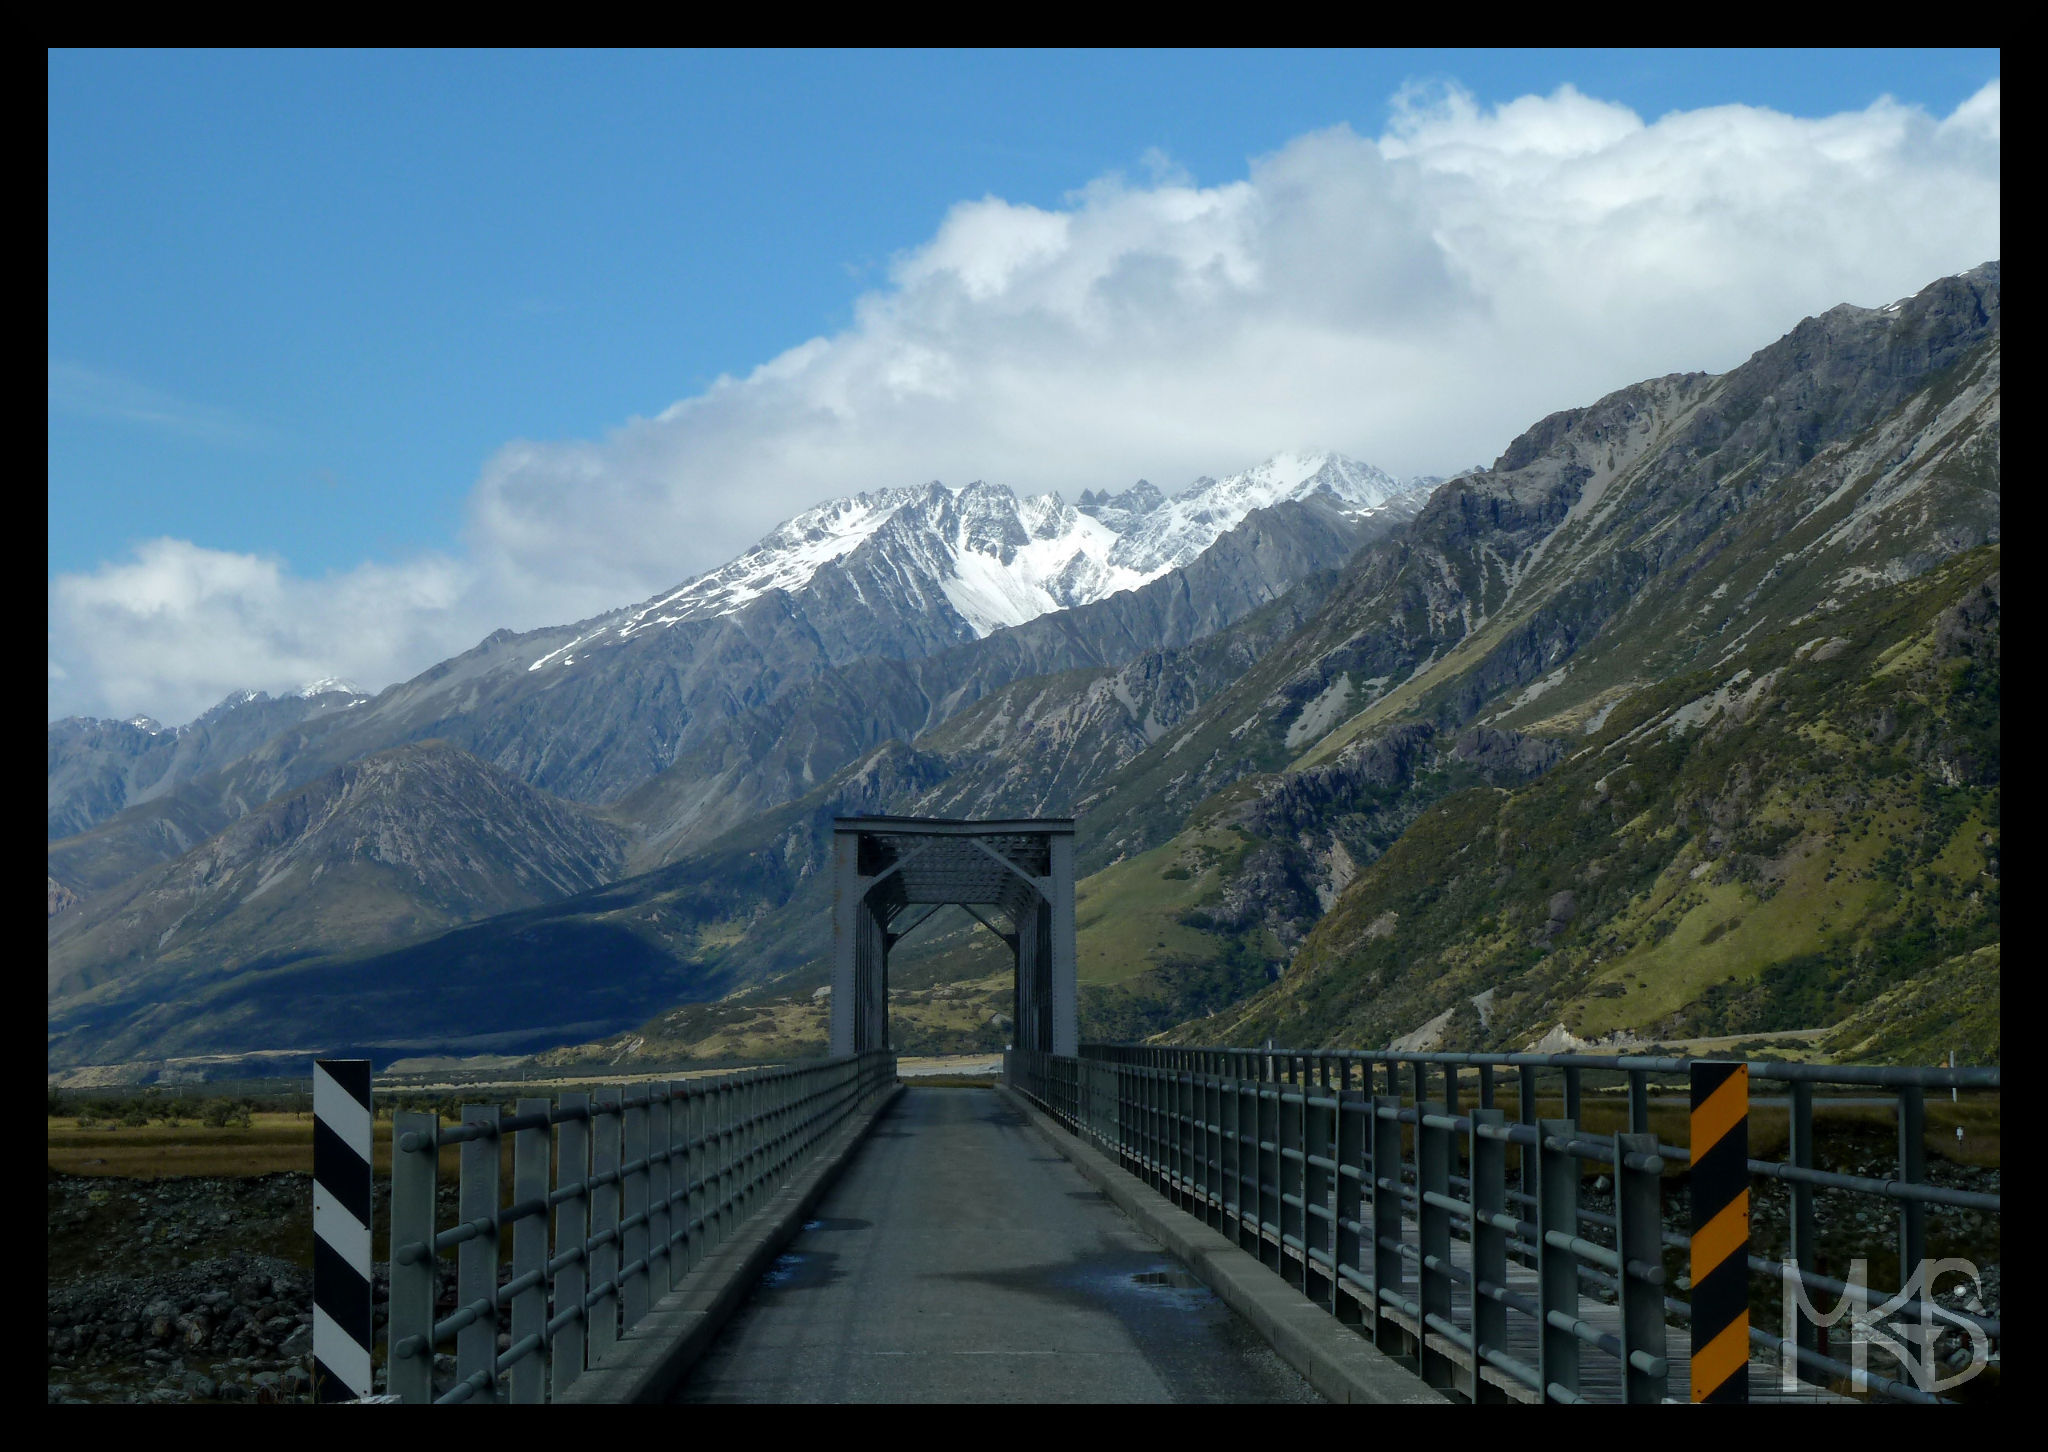 One lane bridge, New Zealand